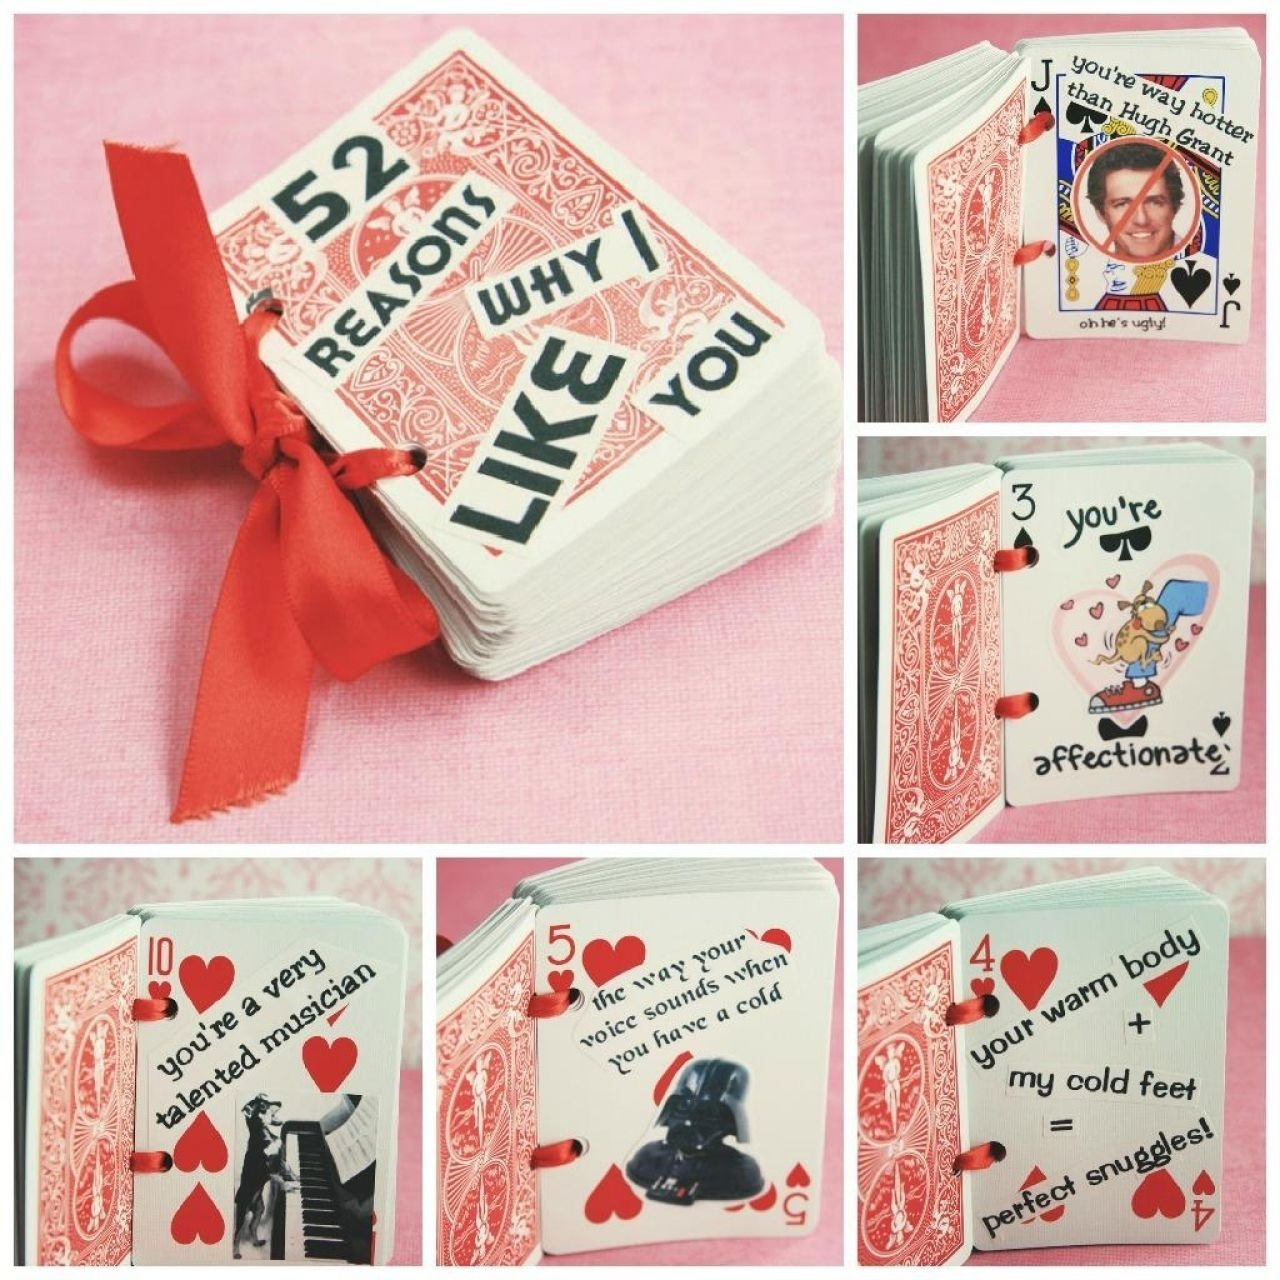 10 Wonderful Ideas For Valentines Day For Him valentines day crafts him lovely valentine gifts your dma homes 9